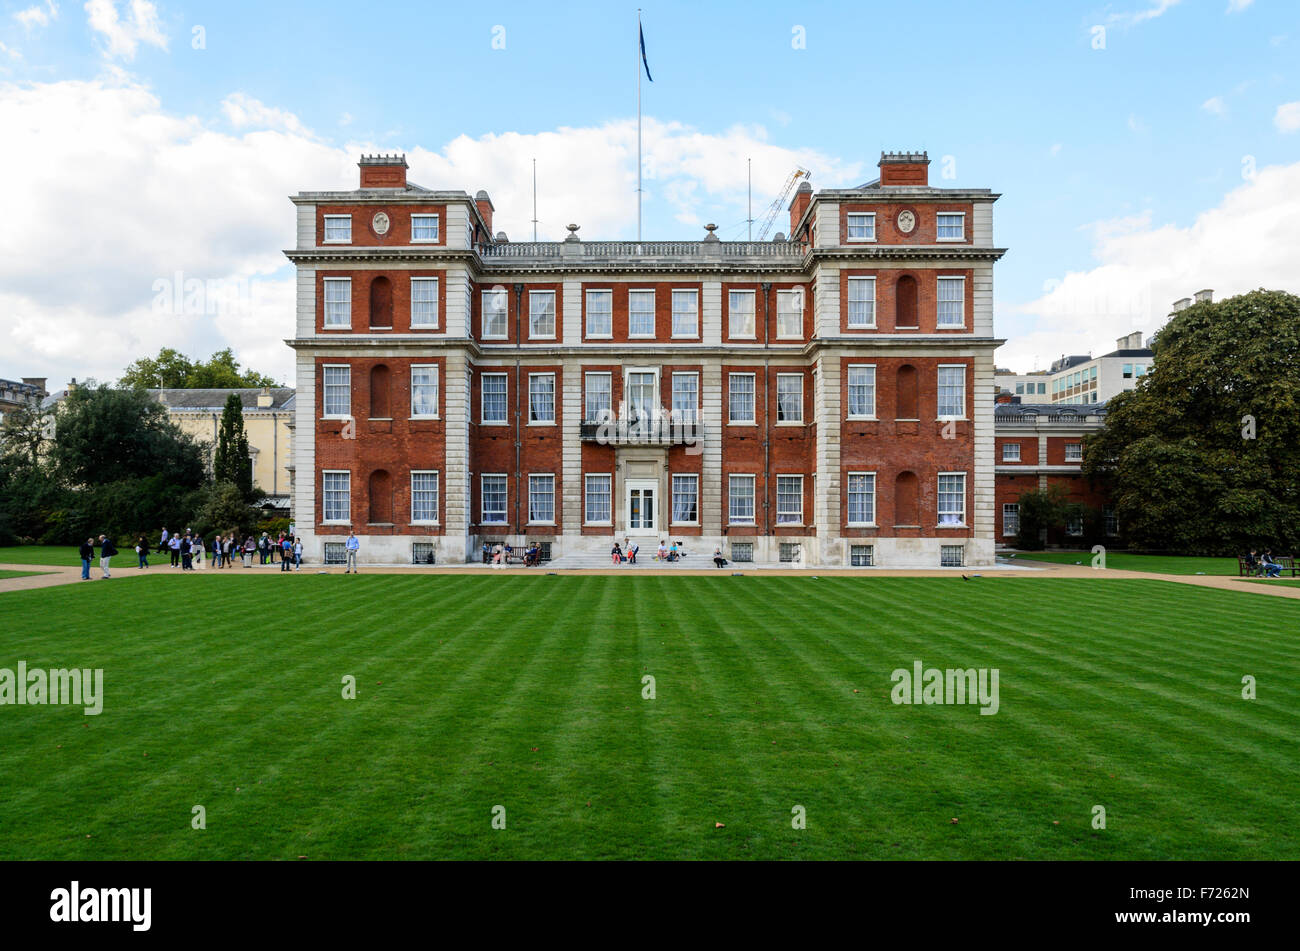 Marlborough House, the home of the Commonwealth Secretariat, Westminster, London, England, UK. - Stock Image